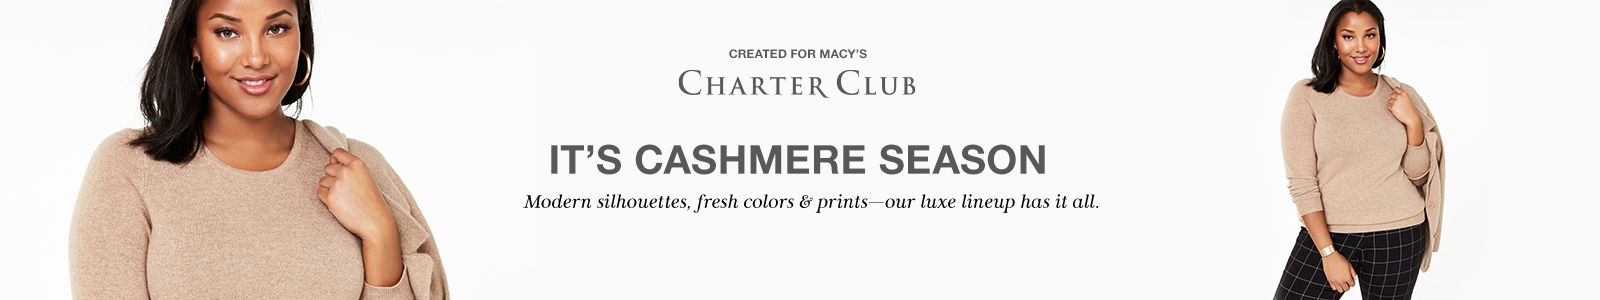 Created For Macy's, Charter Club, Its, Cashmere Season